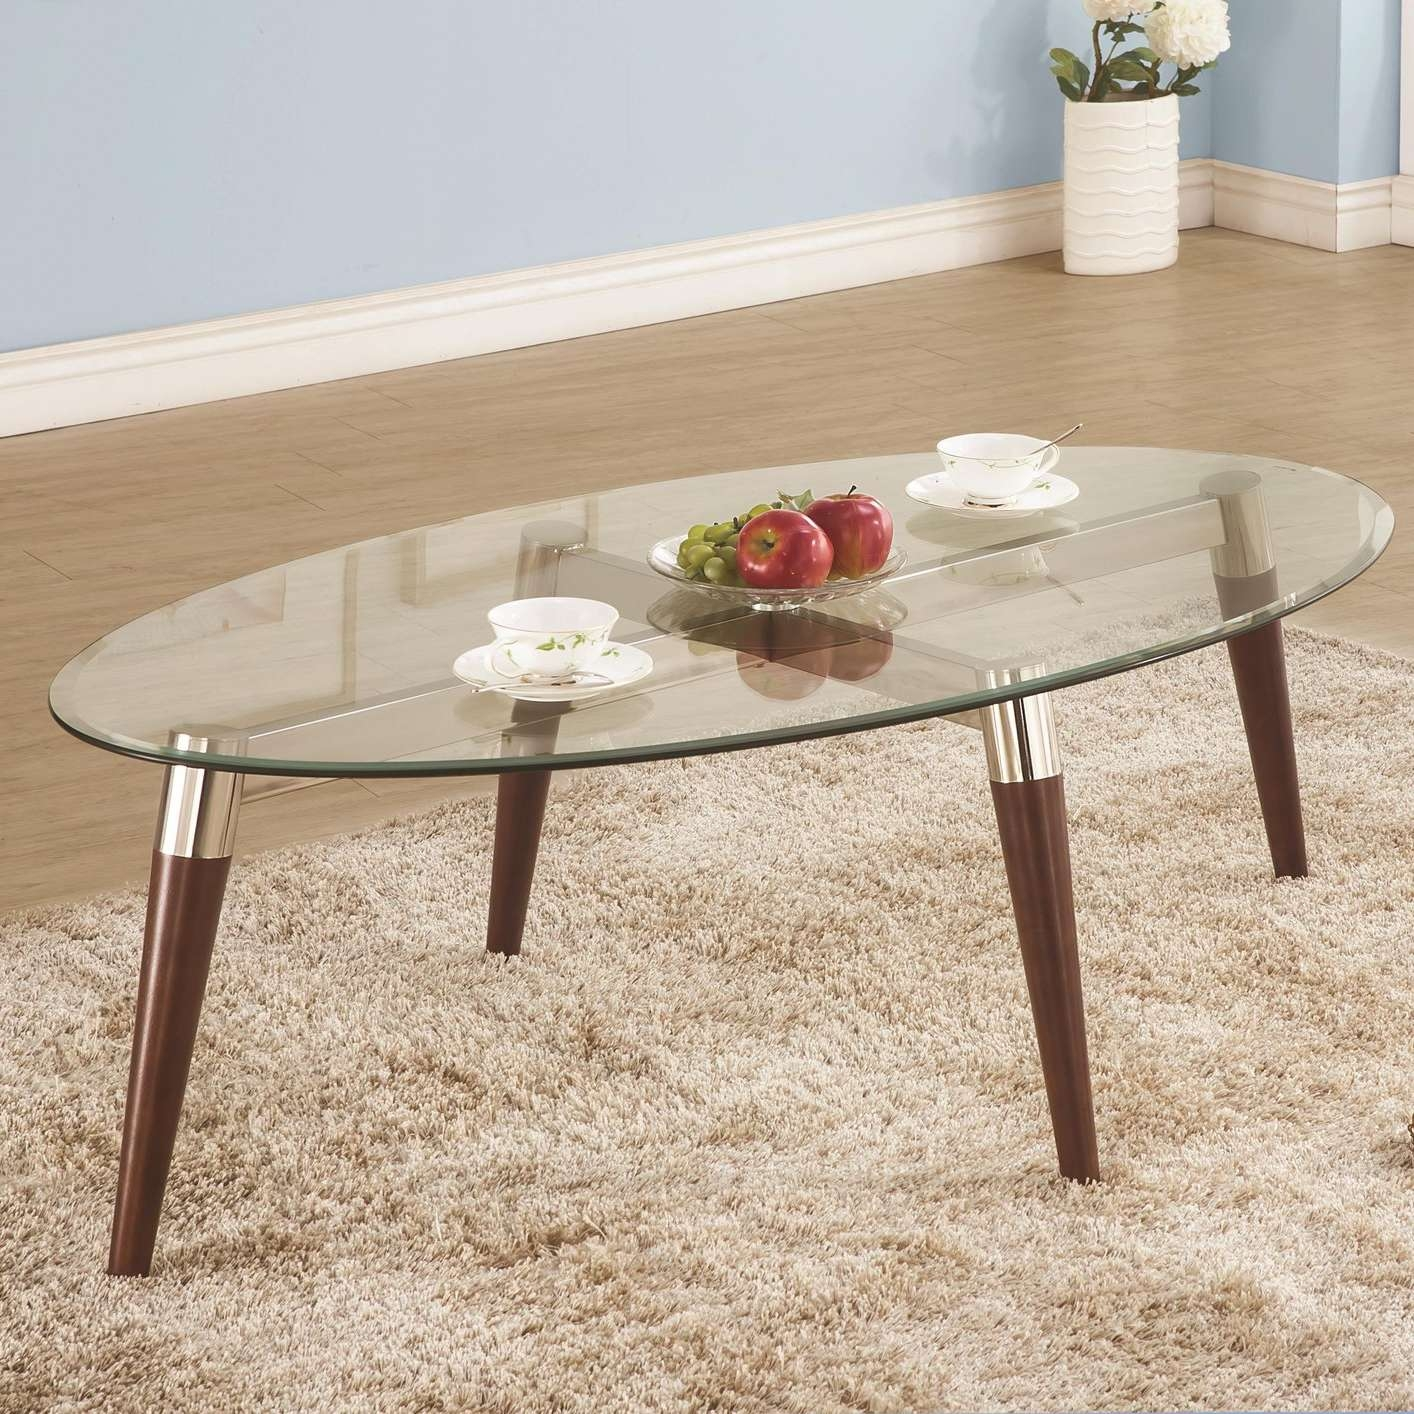 Natalia Brown Glass Coffee Table – Steal A Sofa Furniture Outlet With 2018 Oval Glass And Wood Coffee Tables (View 15 of 20)